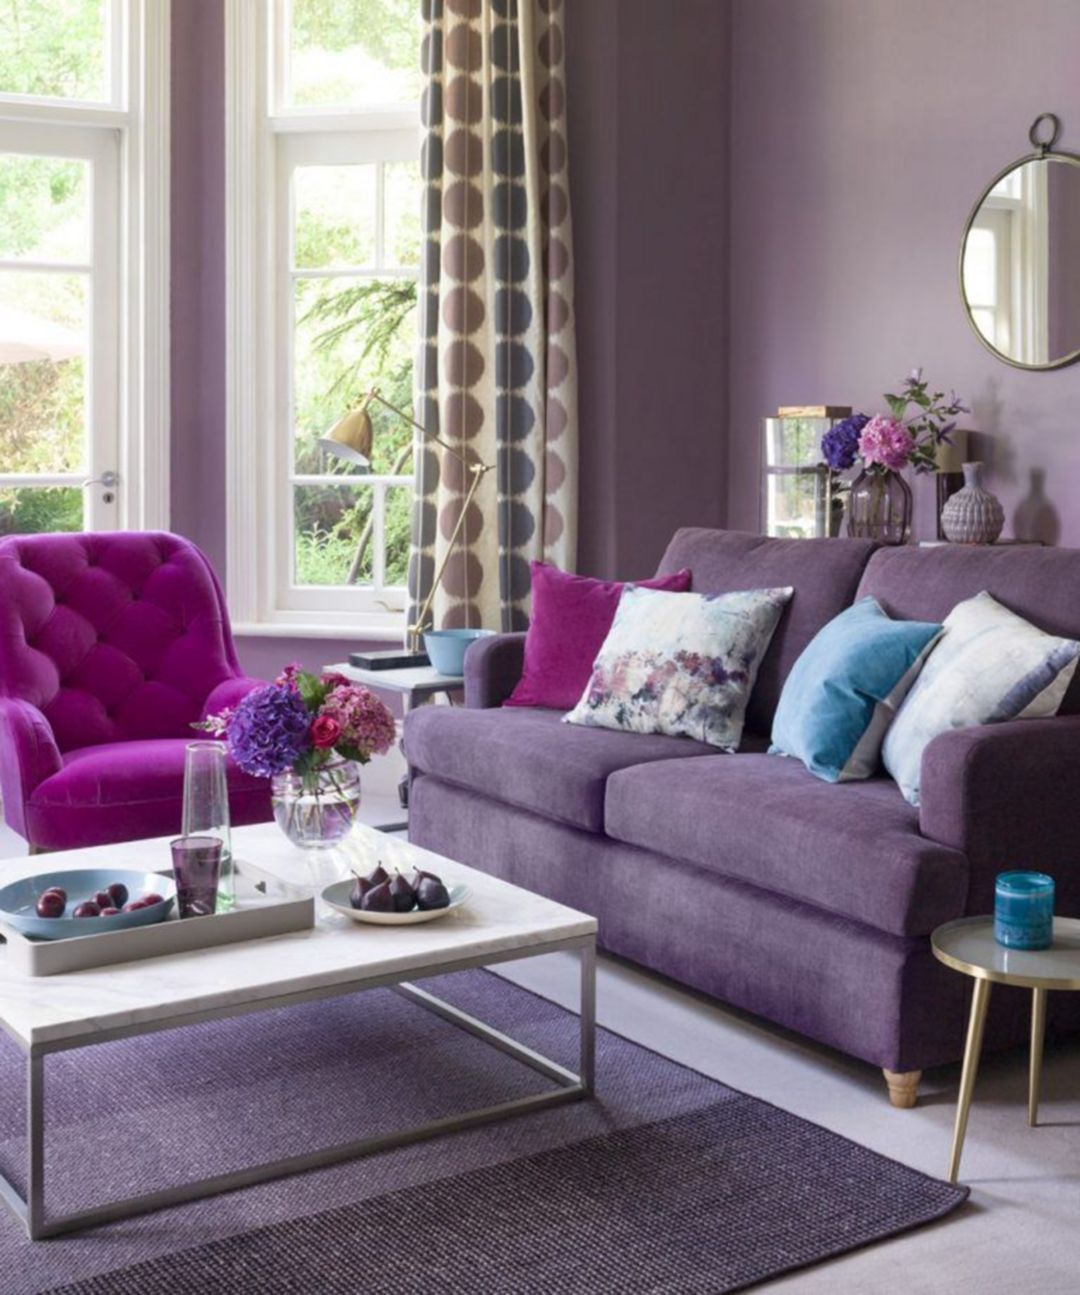 A Color Design Can Establish The Tone For Your Living Room Discover A Fresh Appearance For Purple Living Room Living Room Color Schemes Colourful Living Room Plum colored living rooms